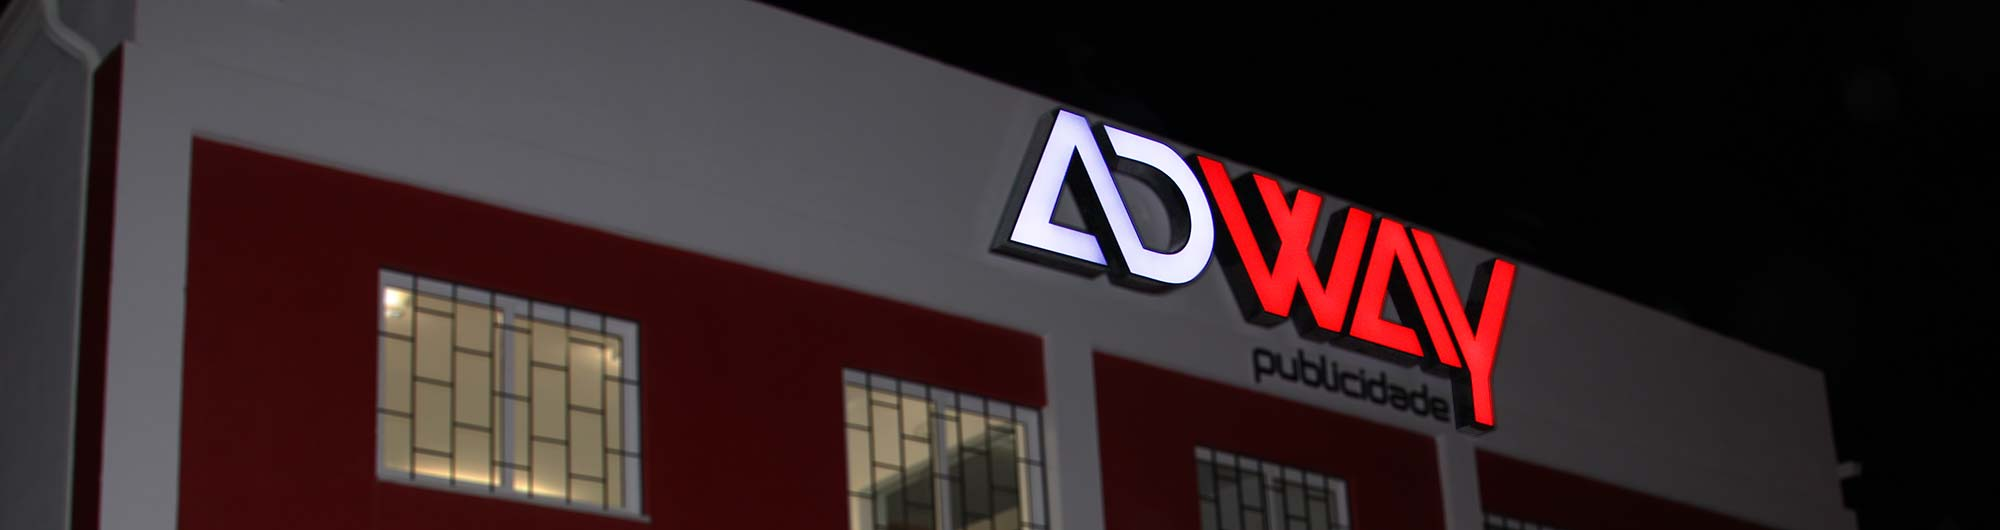 adway